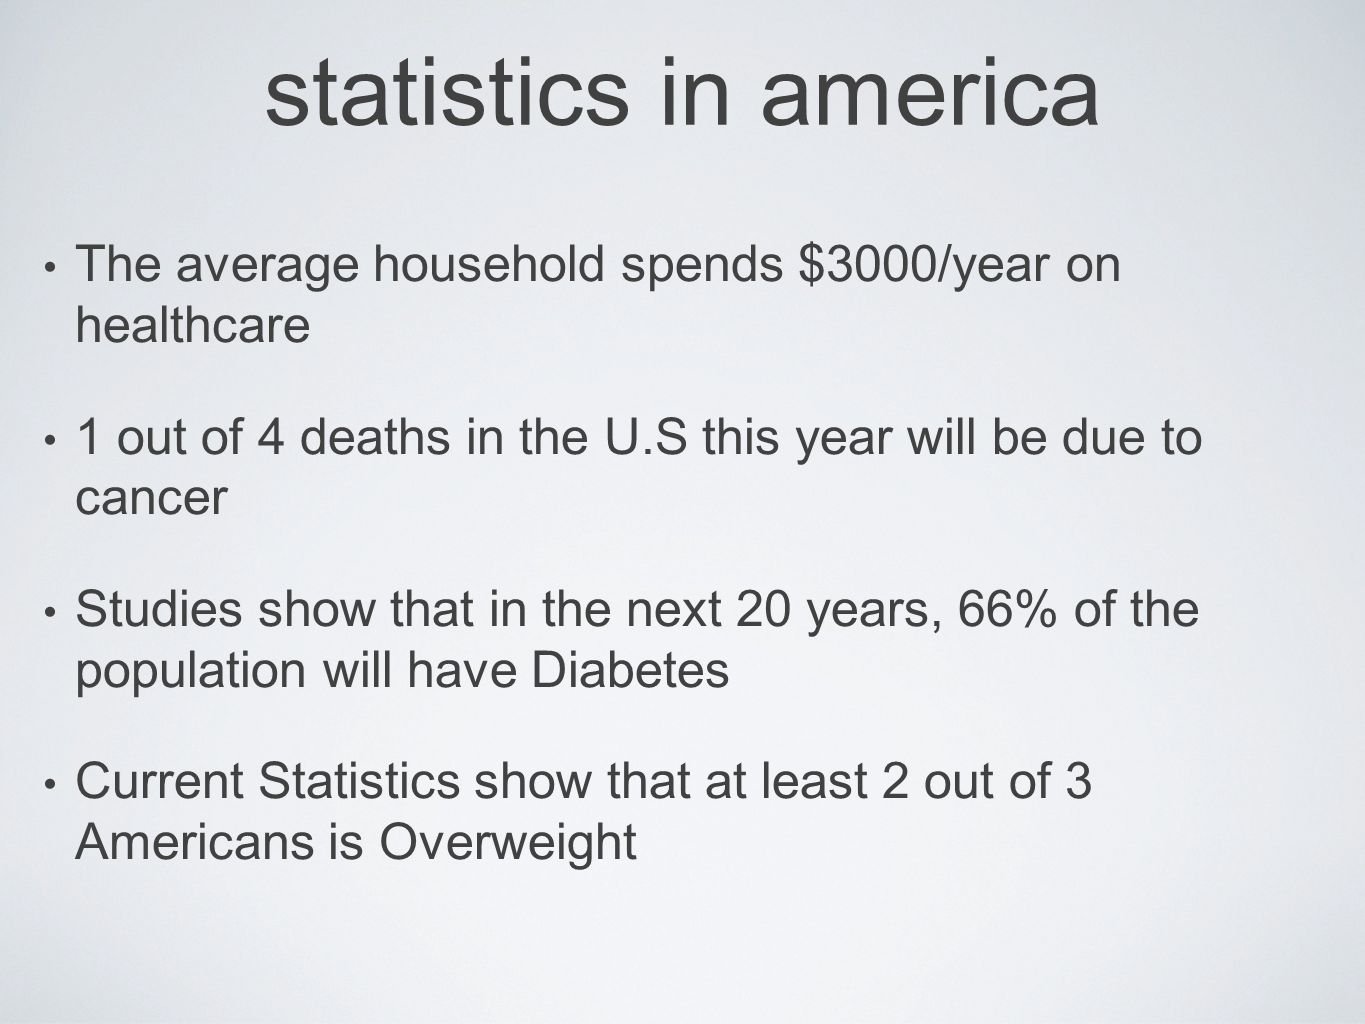 statistics in america The average household spends $3000/year on healthcare 1 out of 4 deaths in the U.S this year will be due to cancer Studies show